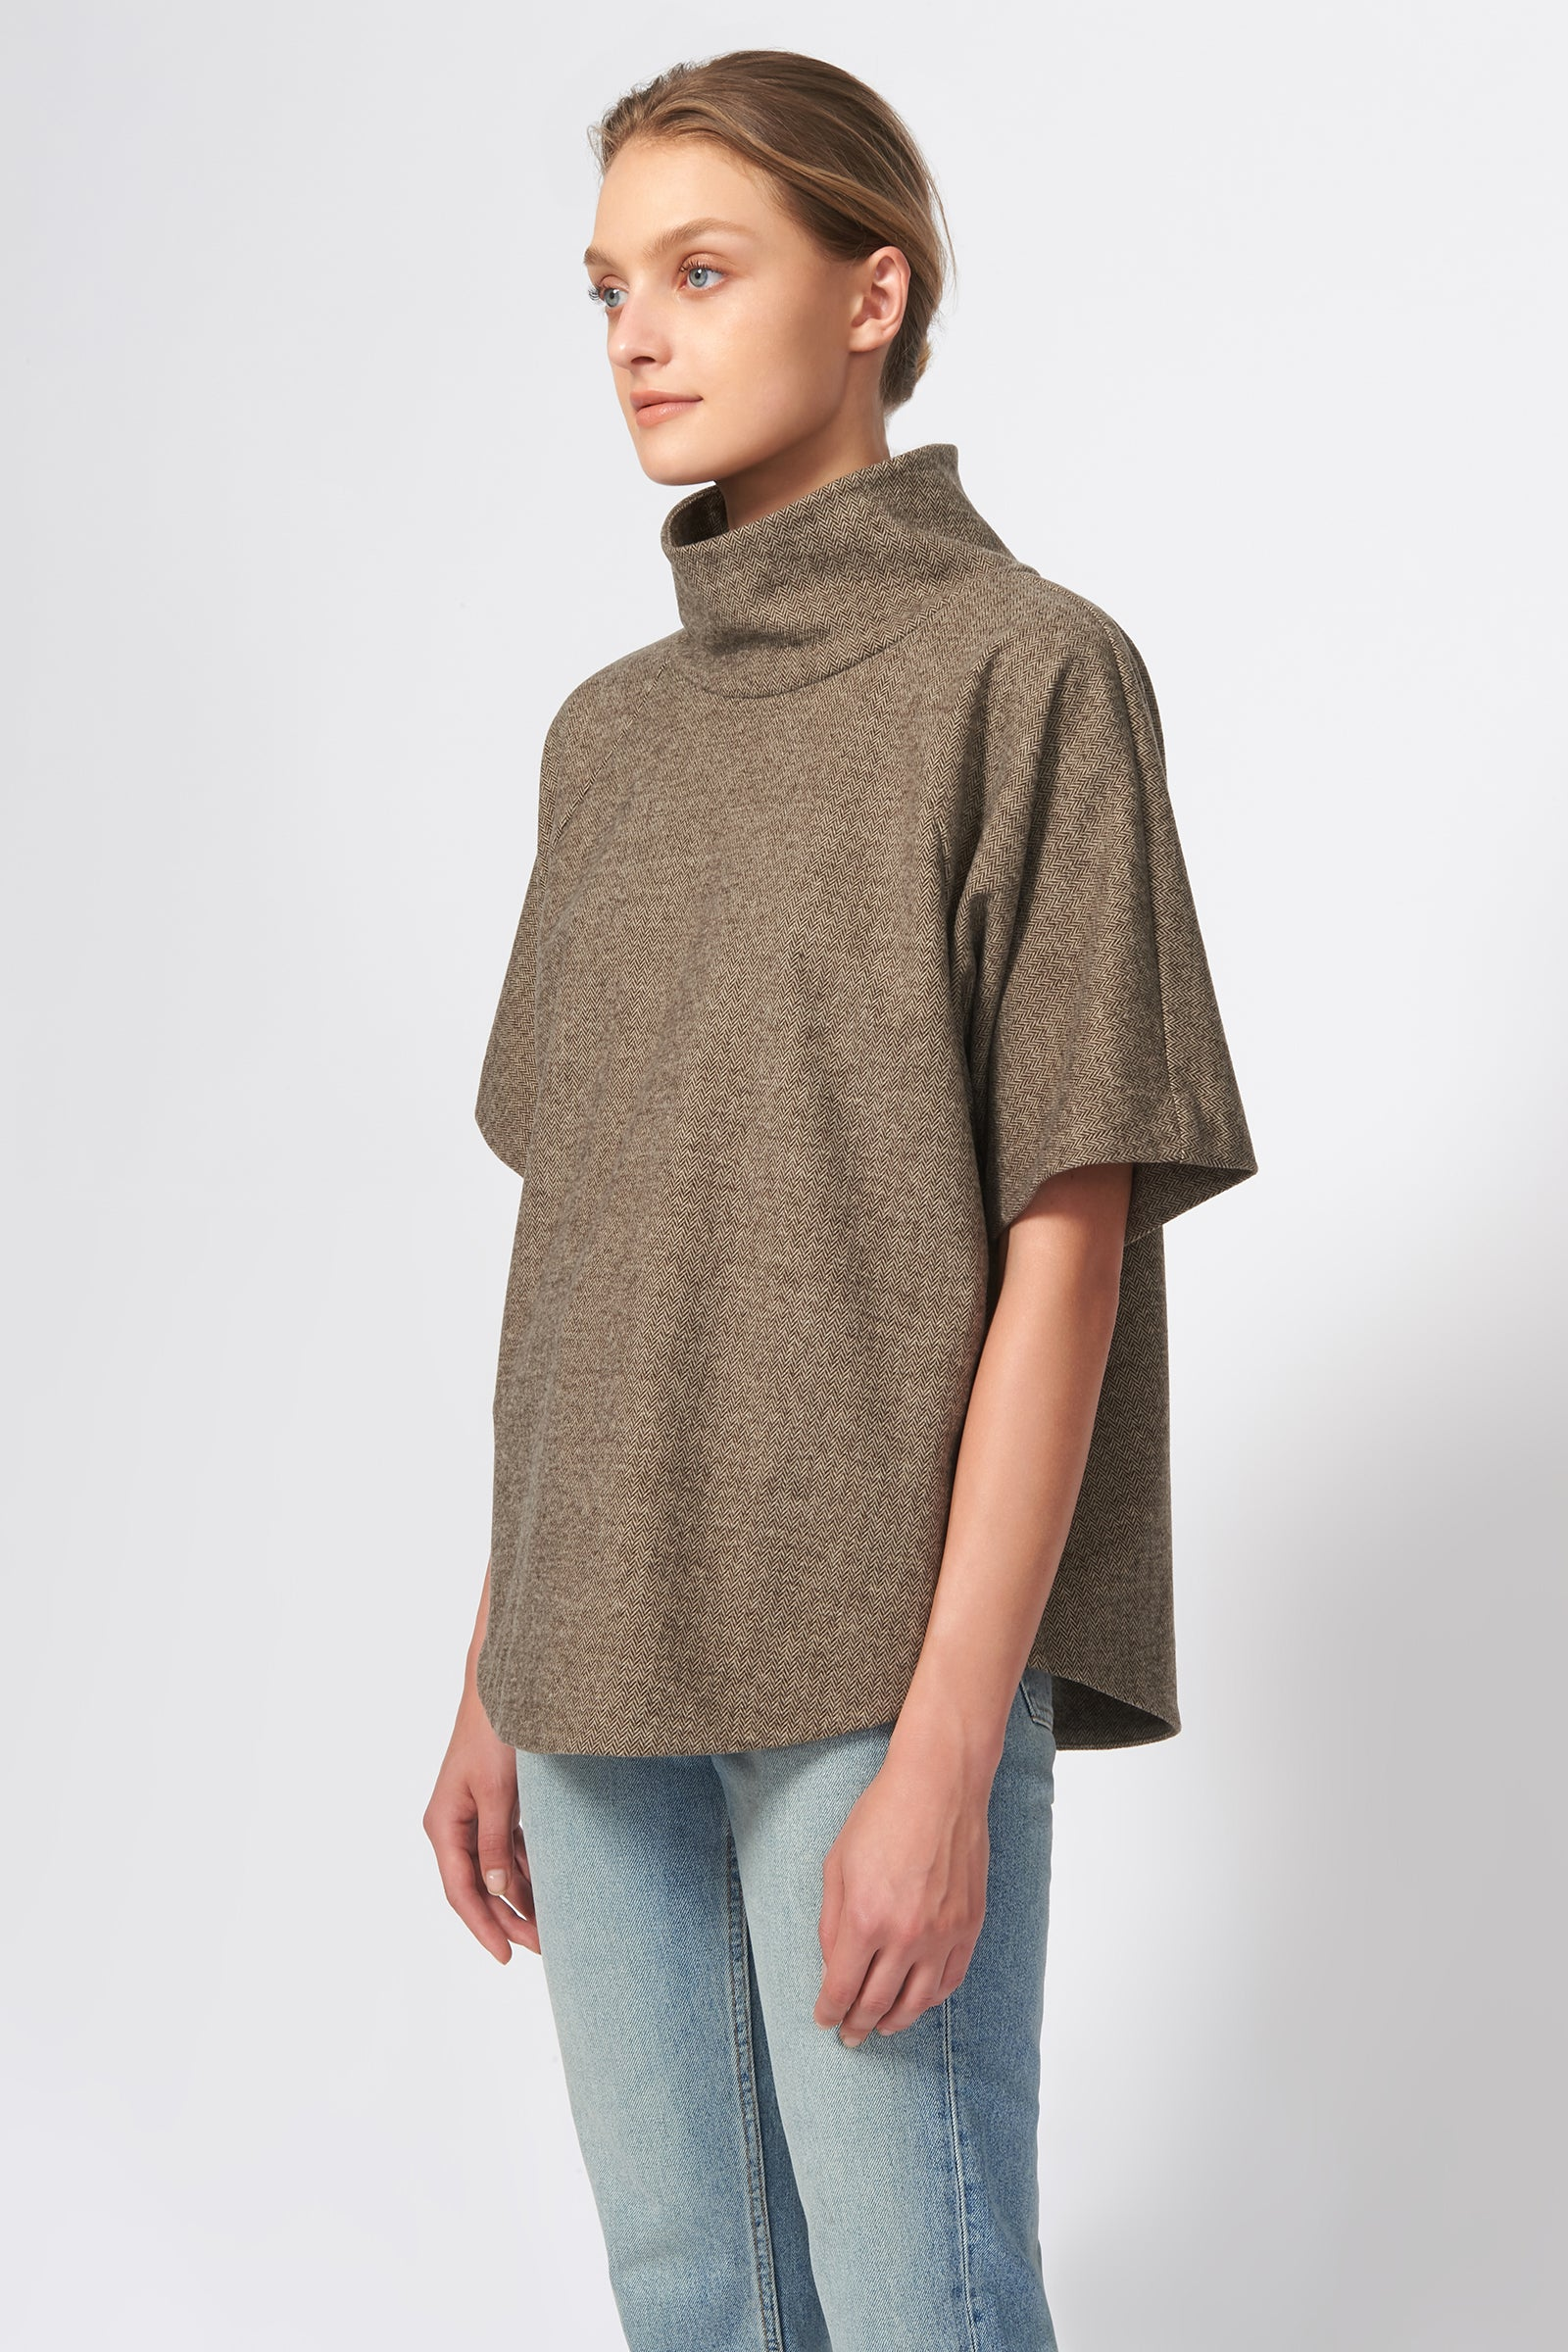 Kal Rieman Drop Sleeve T-Neck in Taupe Chevron on Model Side View